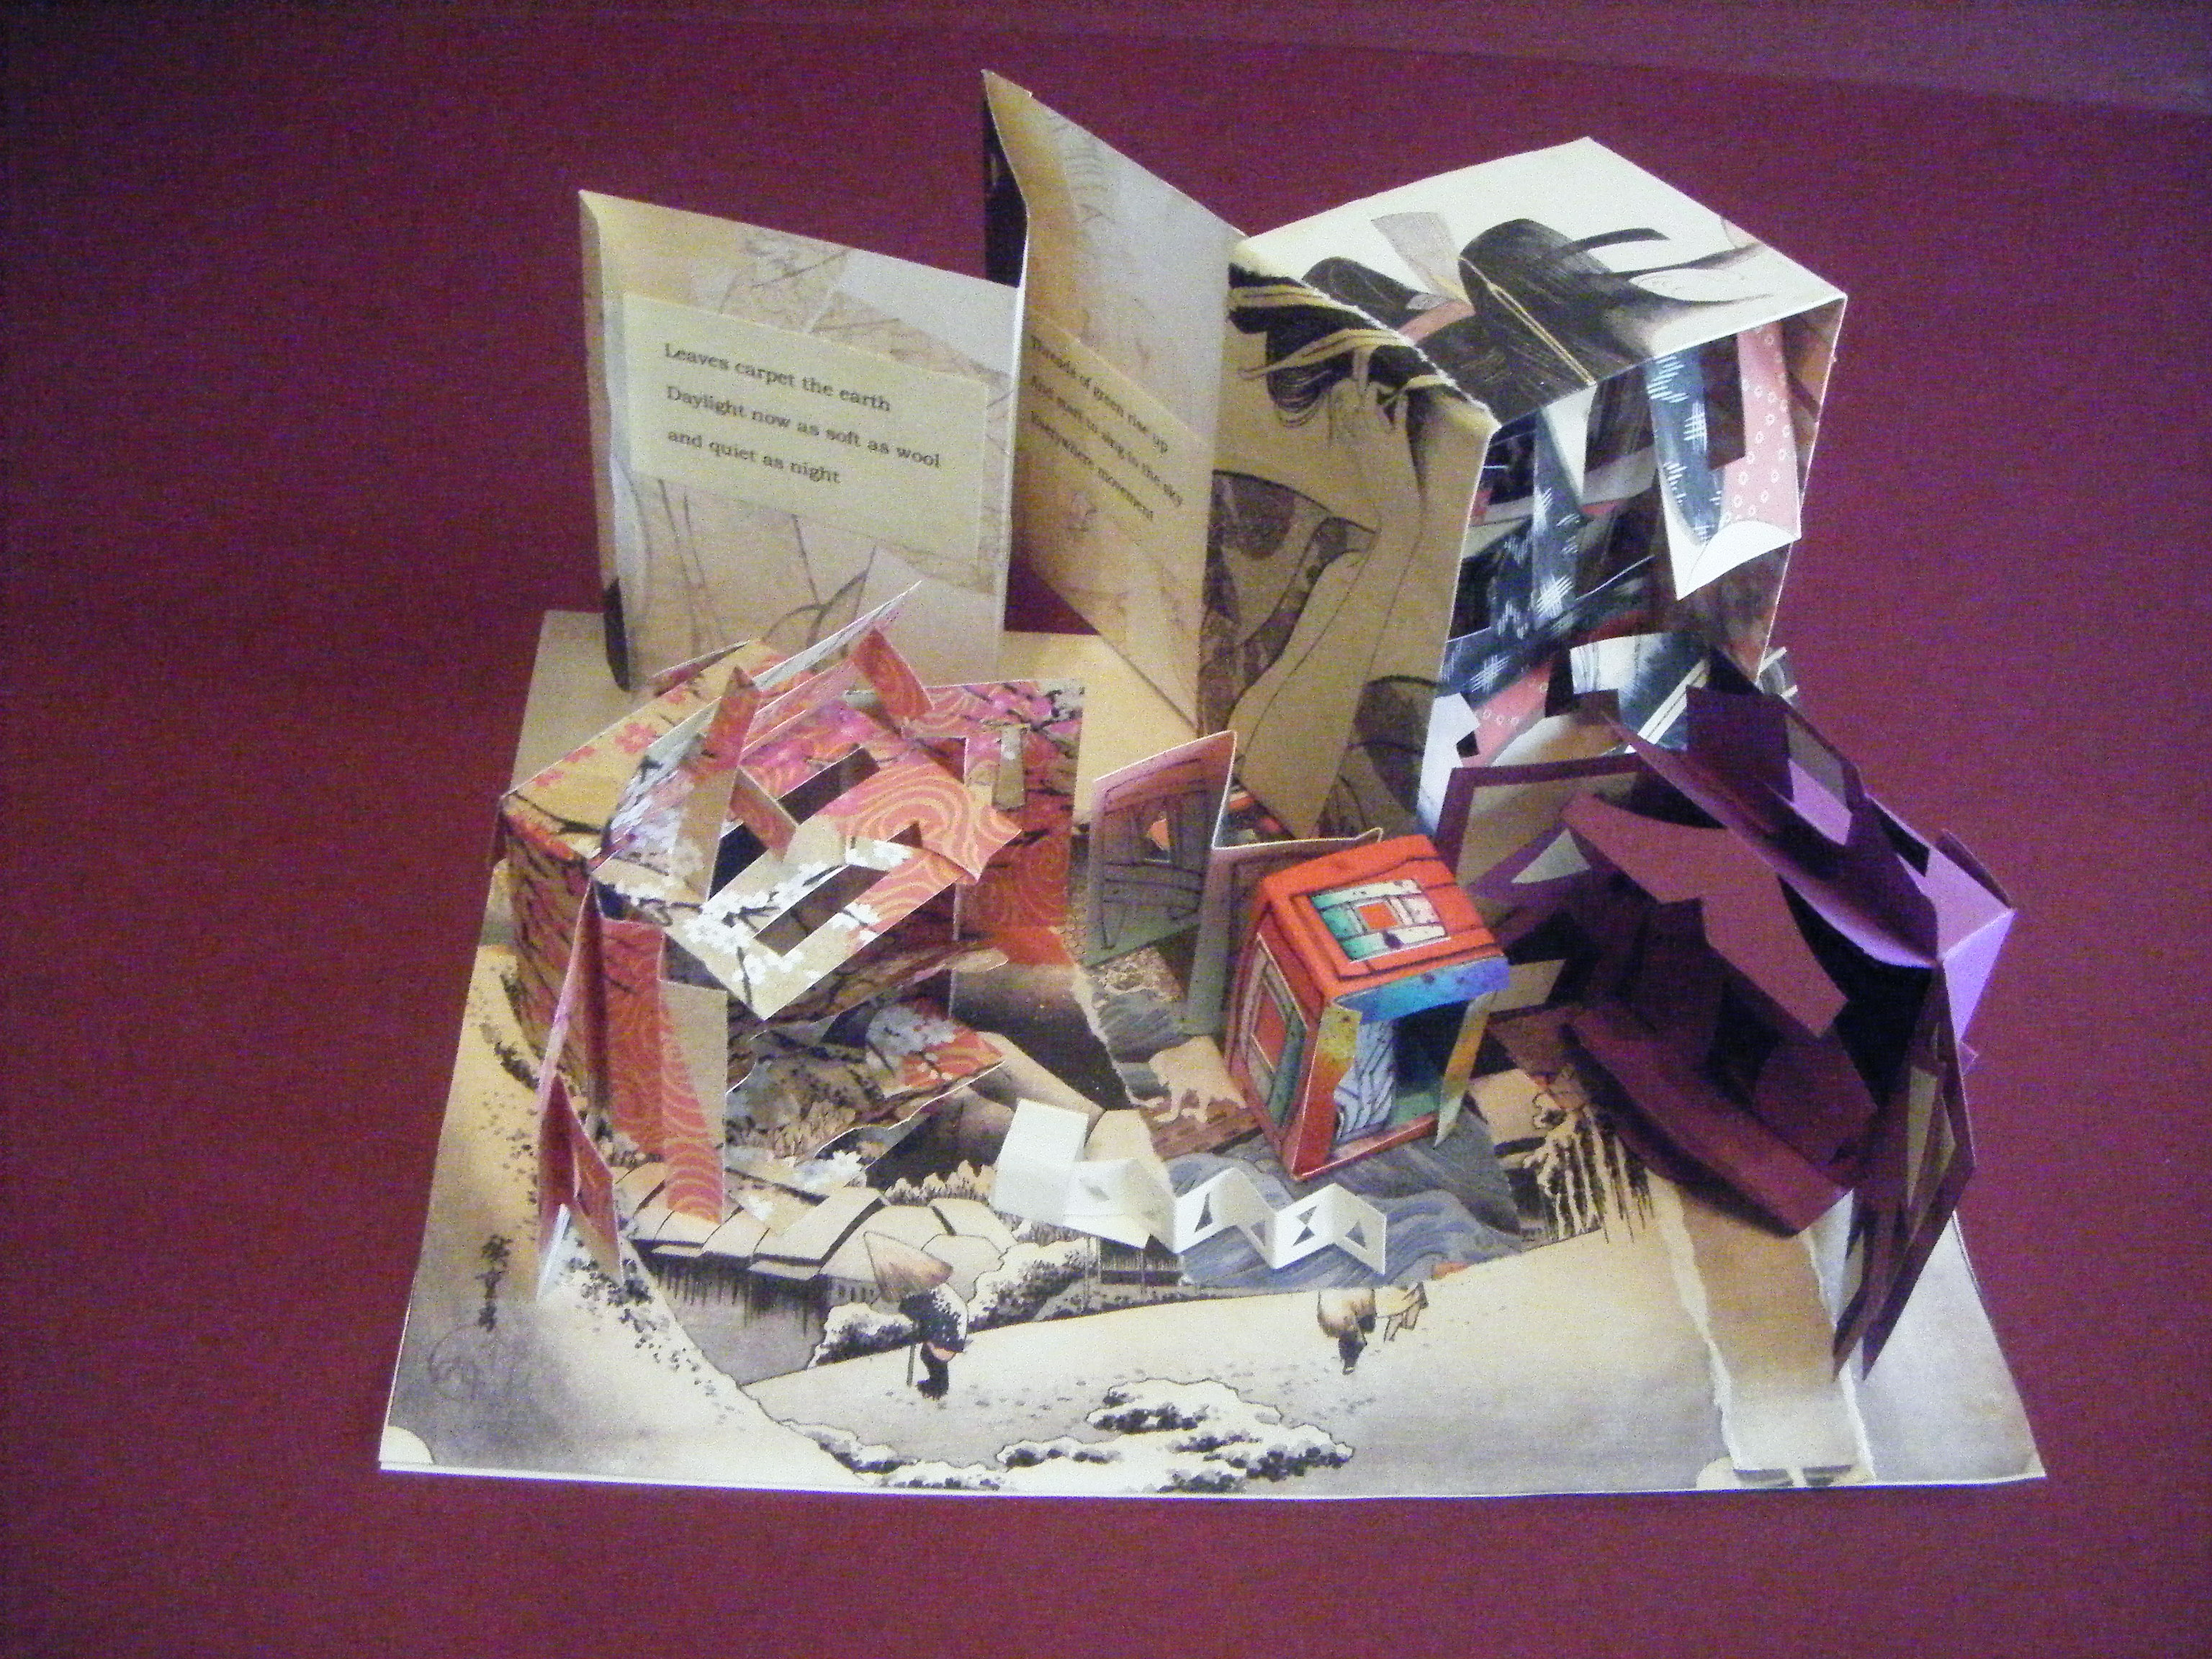 The Book Art Project - Pioneering work in developing literacy ...